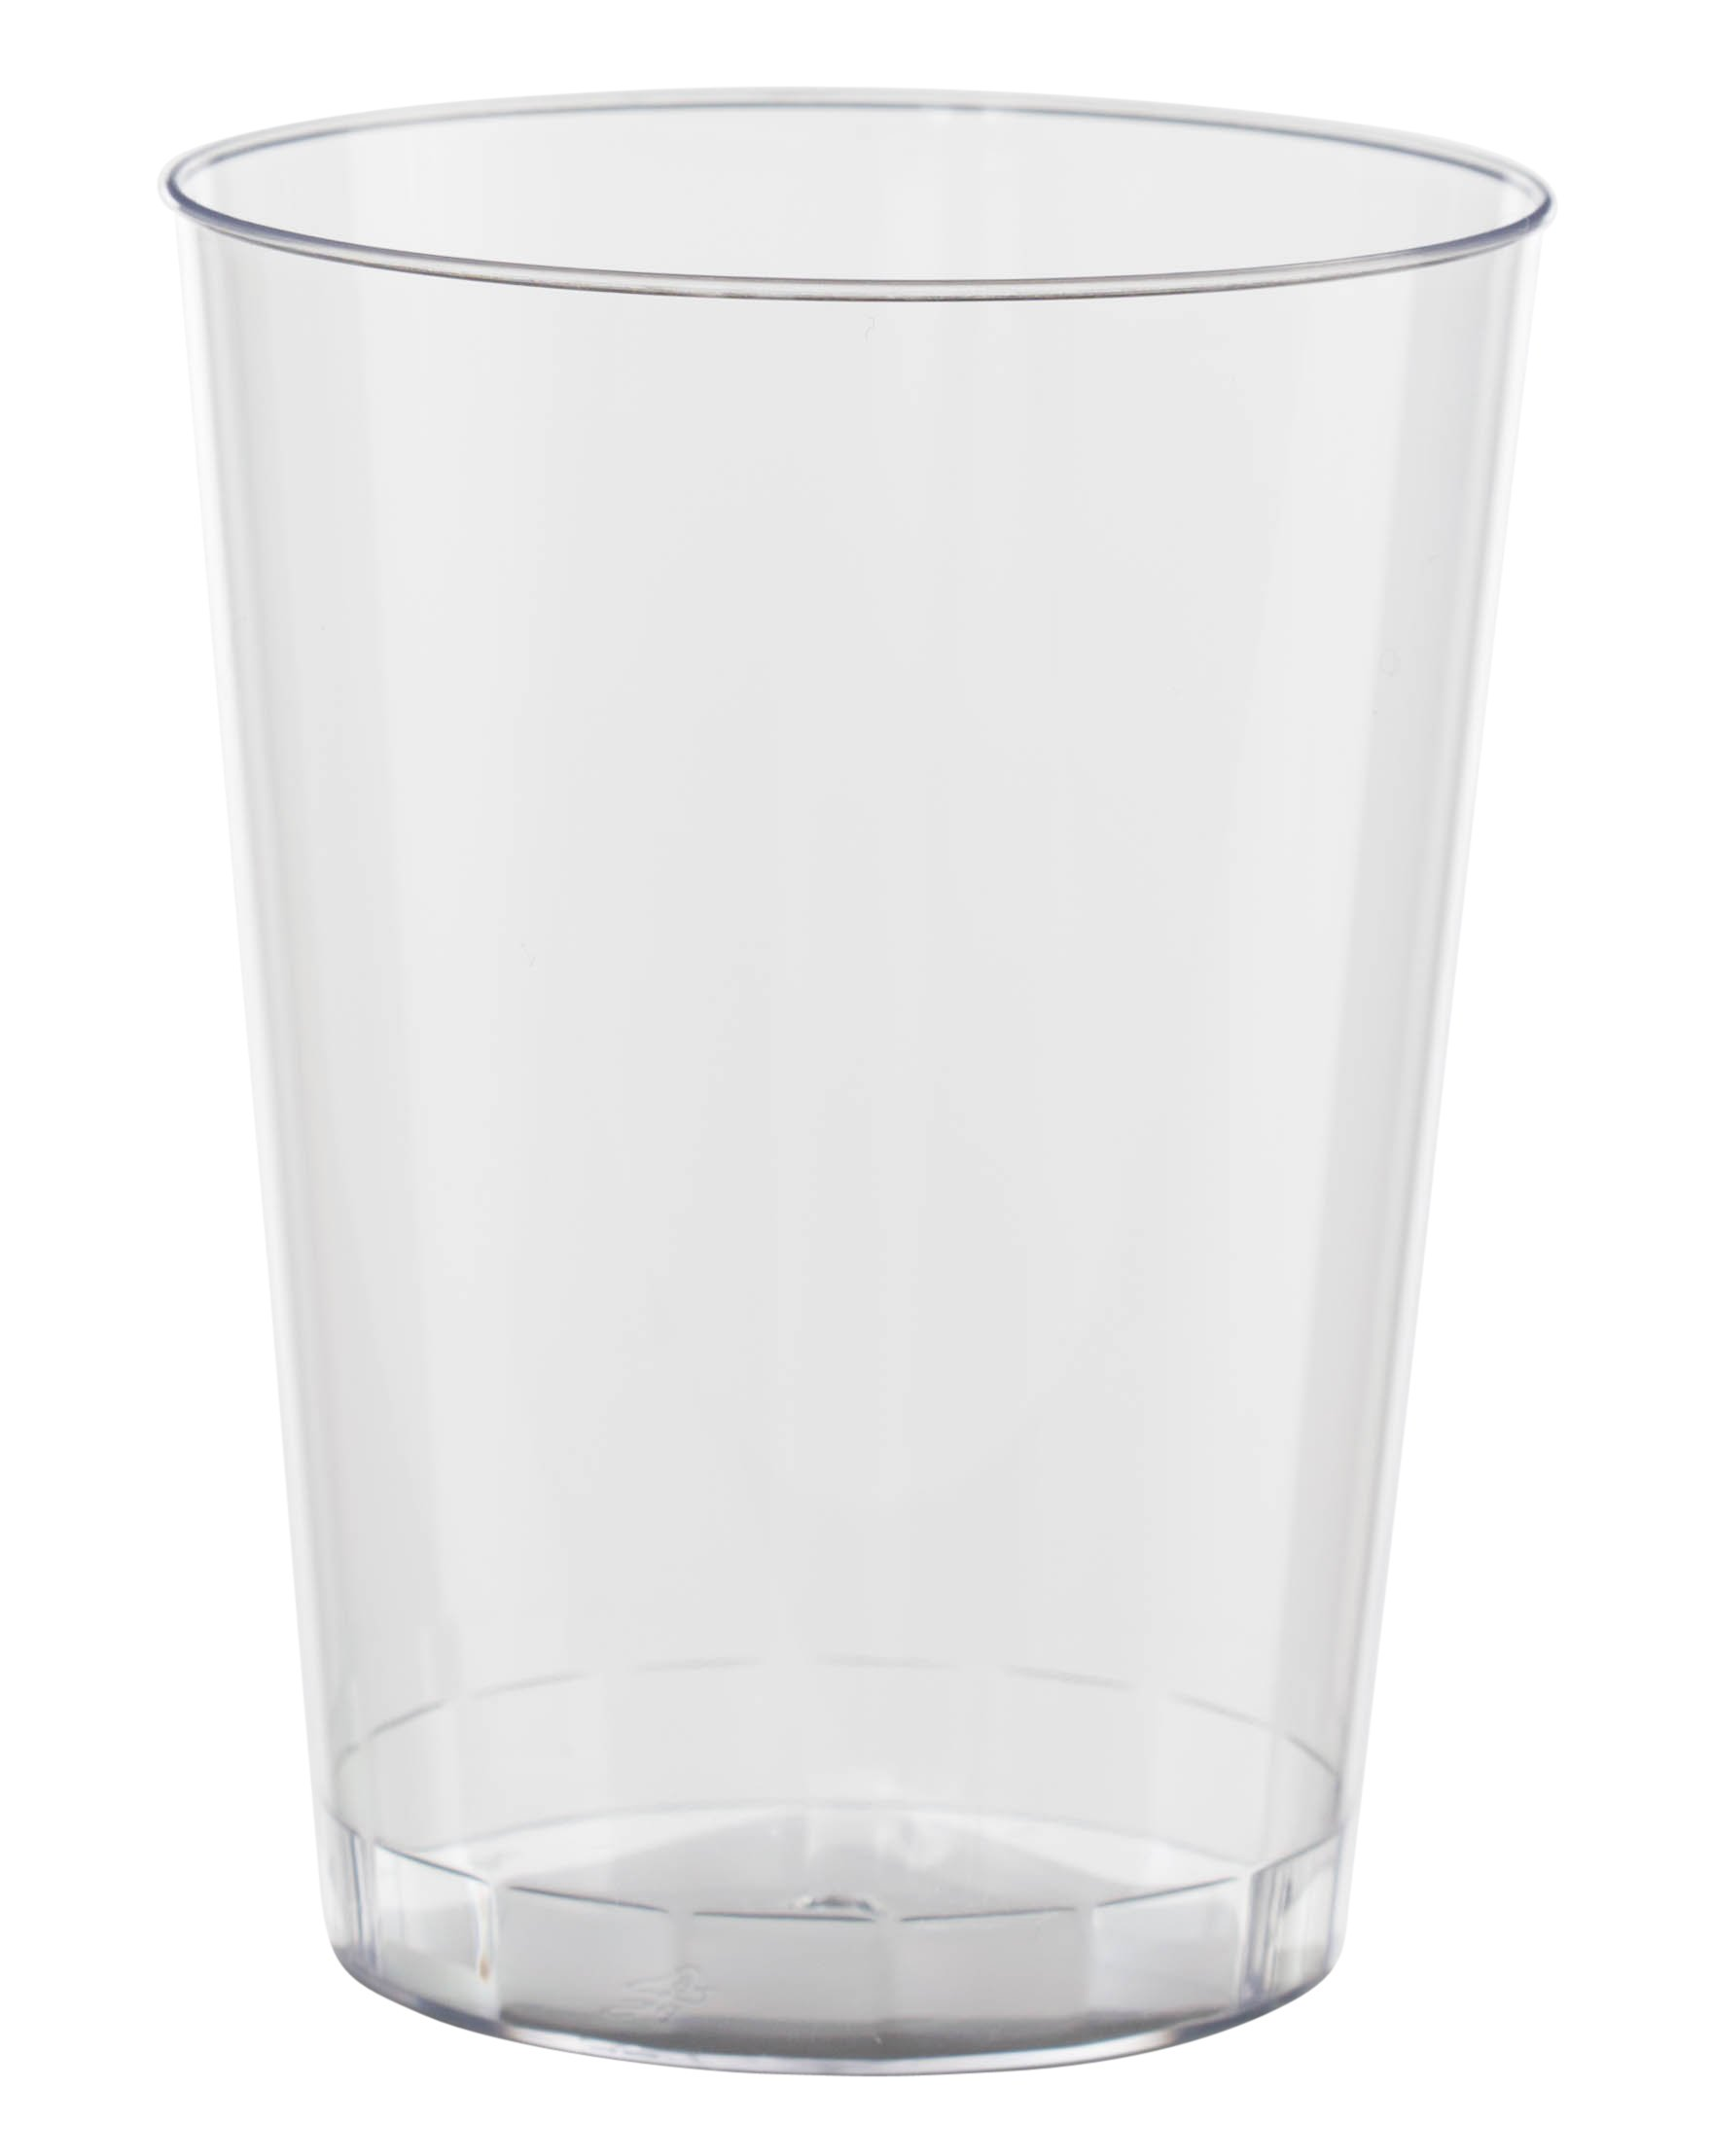 Exquisite 500 Count 8 Oz. Elegant Clear Plastic Cups - Crystle Clear Party Wedding Tumblers